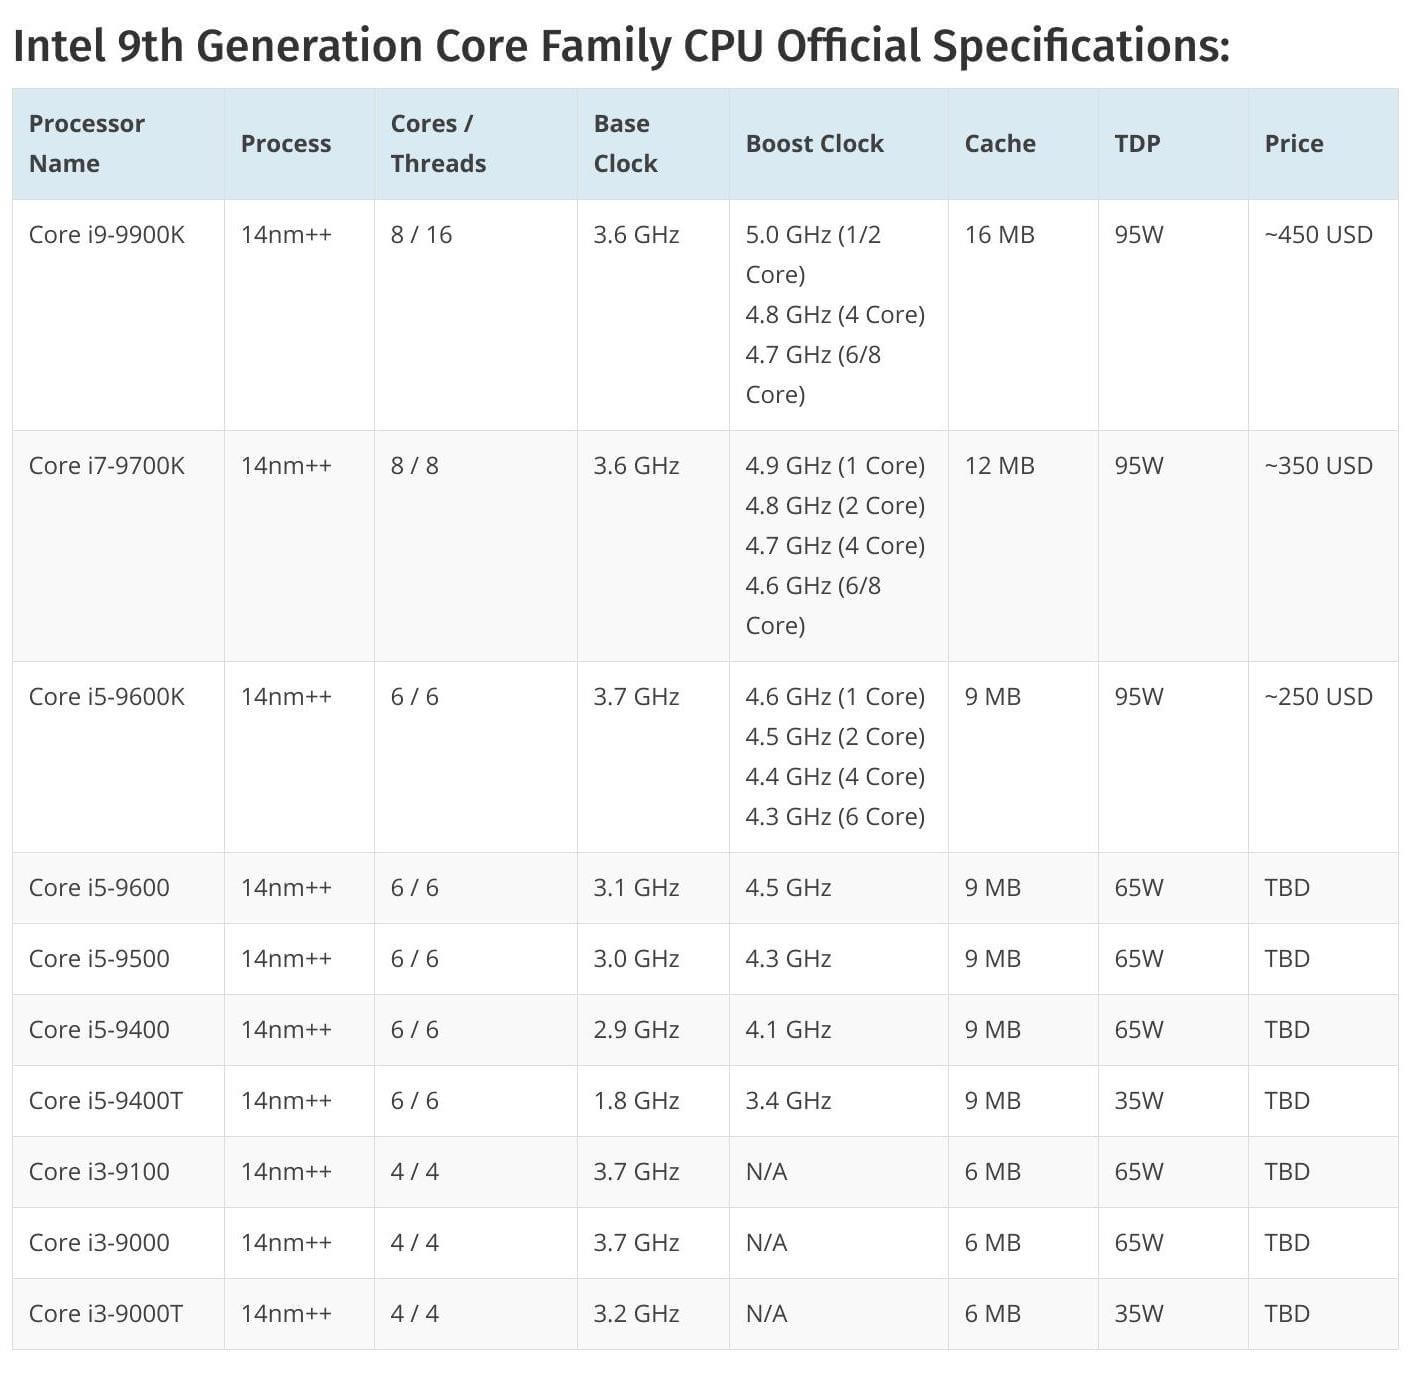 Intel's new Core i9-9900K: 8C/16T with all-core 4.7GHz boost